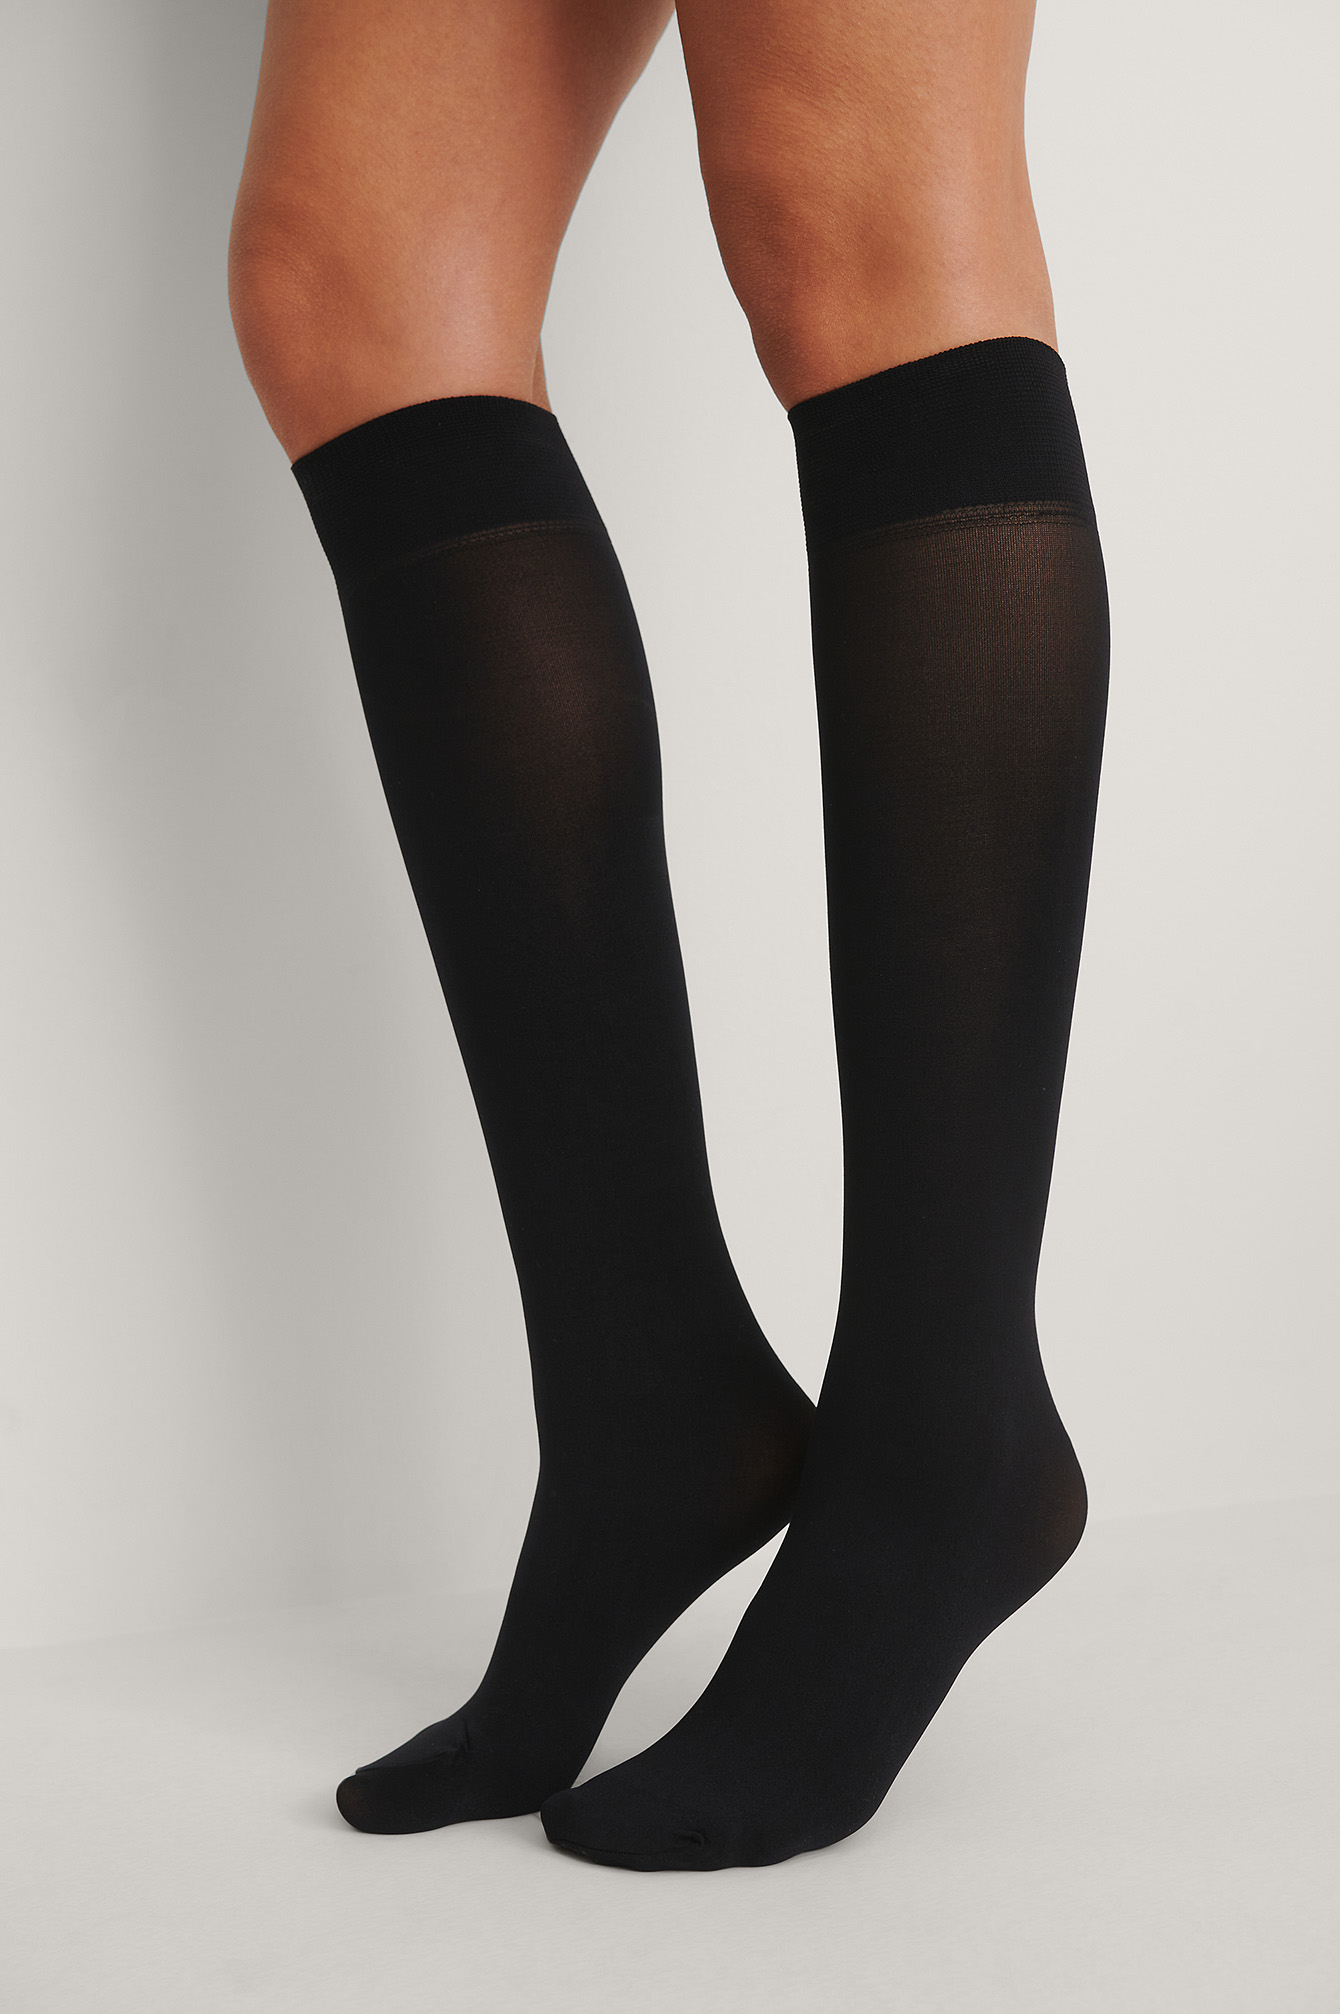 Black Recycled Knee High Socks 2-pack 40 DEN